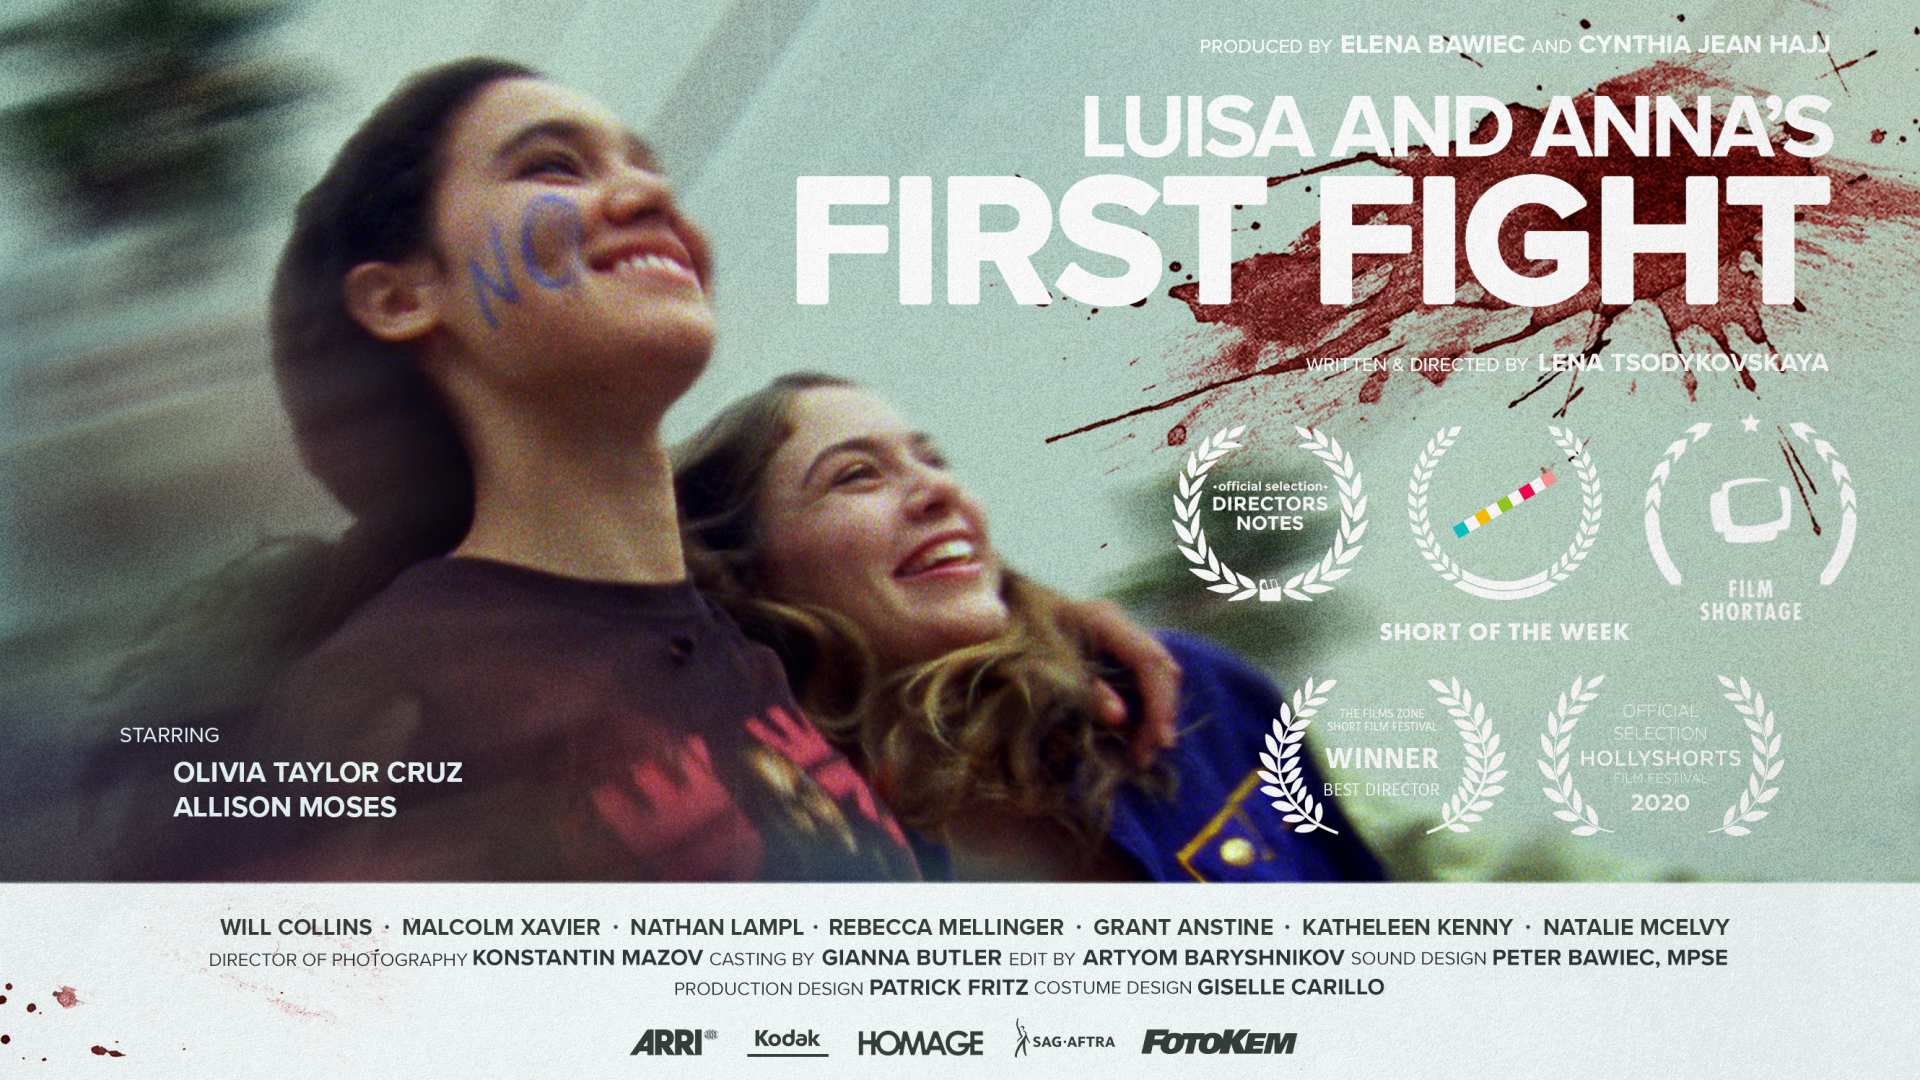 Luisa and Anna's First Fight